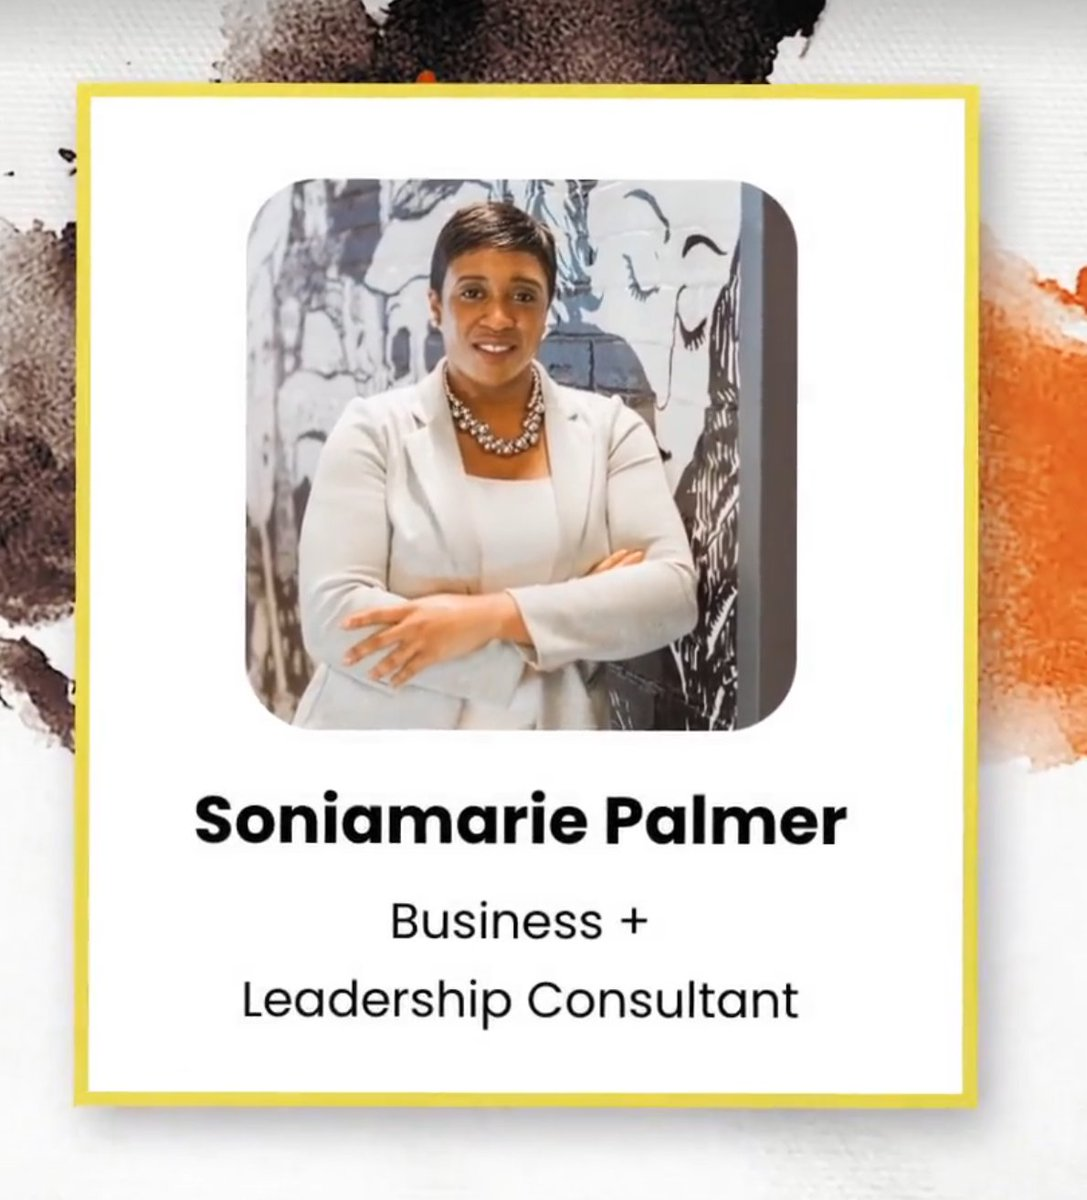 This amazing lady is up first in the line-up today ~ Soniamarie Palmer  #ElevateLiveOnline #UKSmallBiz https://t.co/YmoULVz2HA